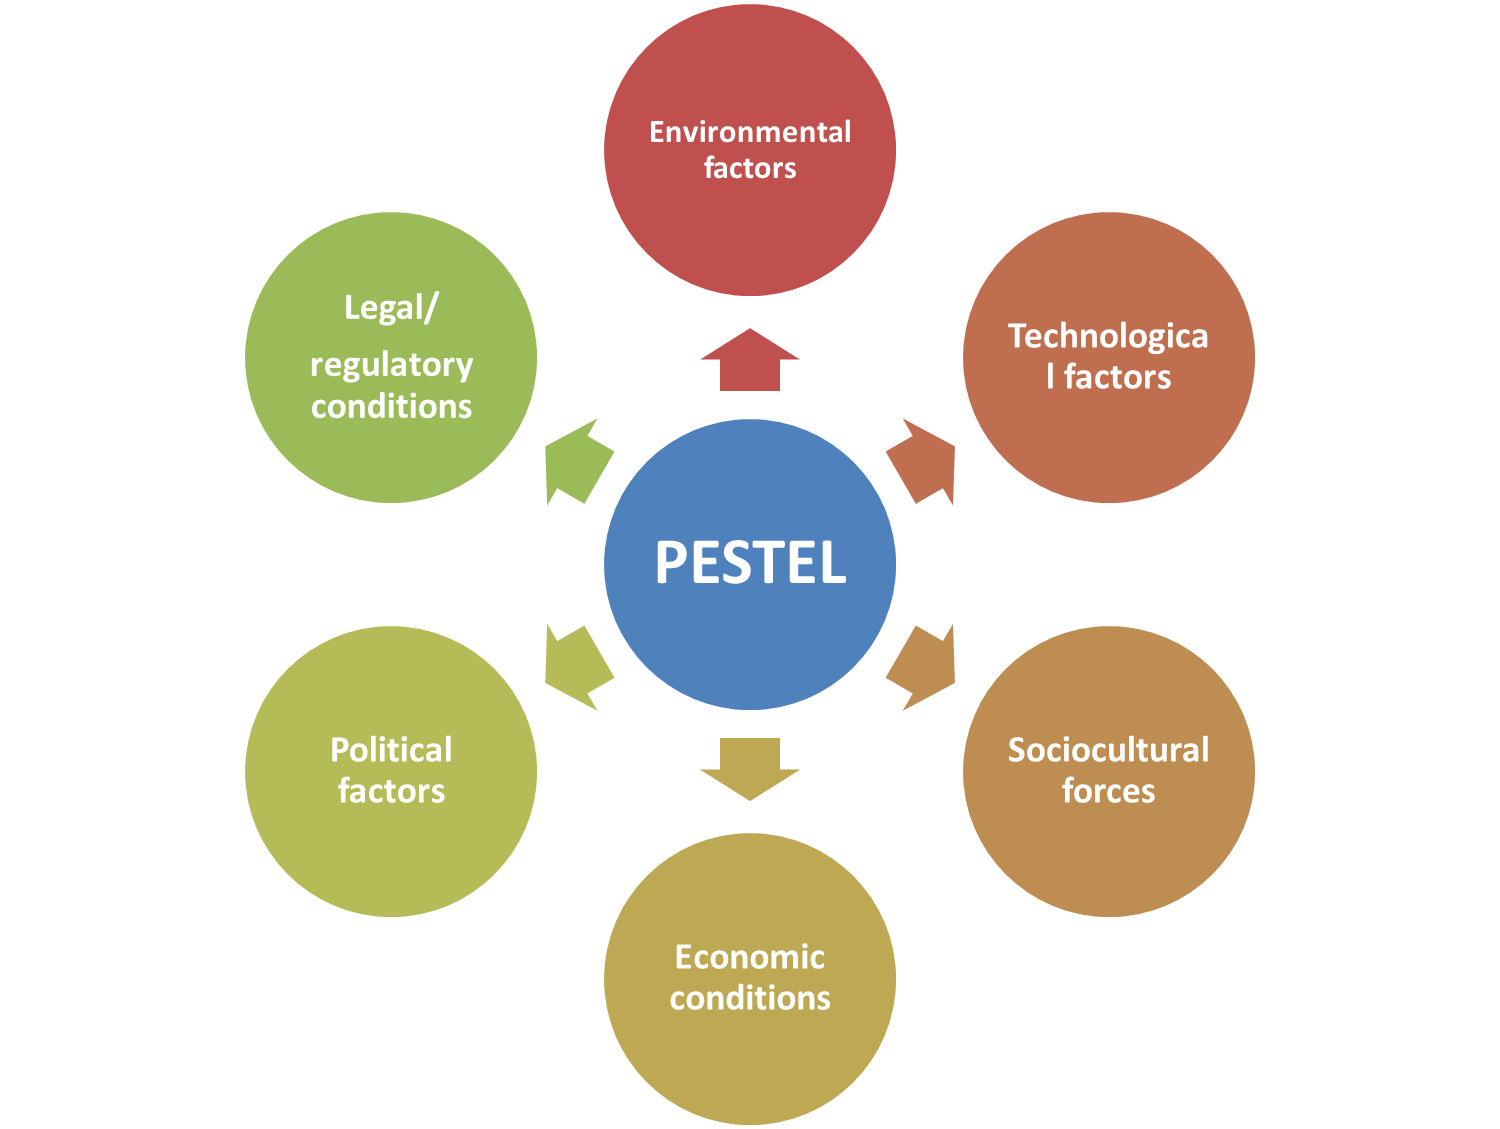 pestel analysis Pestle analysis is an analytical tool for strategic business planning it is a strategic framework for understanding external influences on a business.